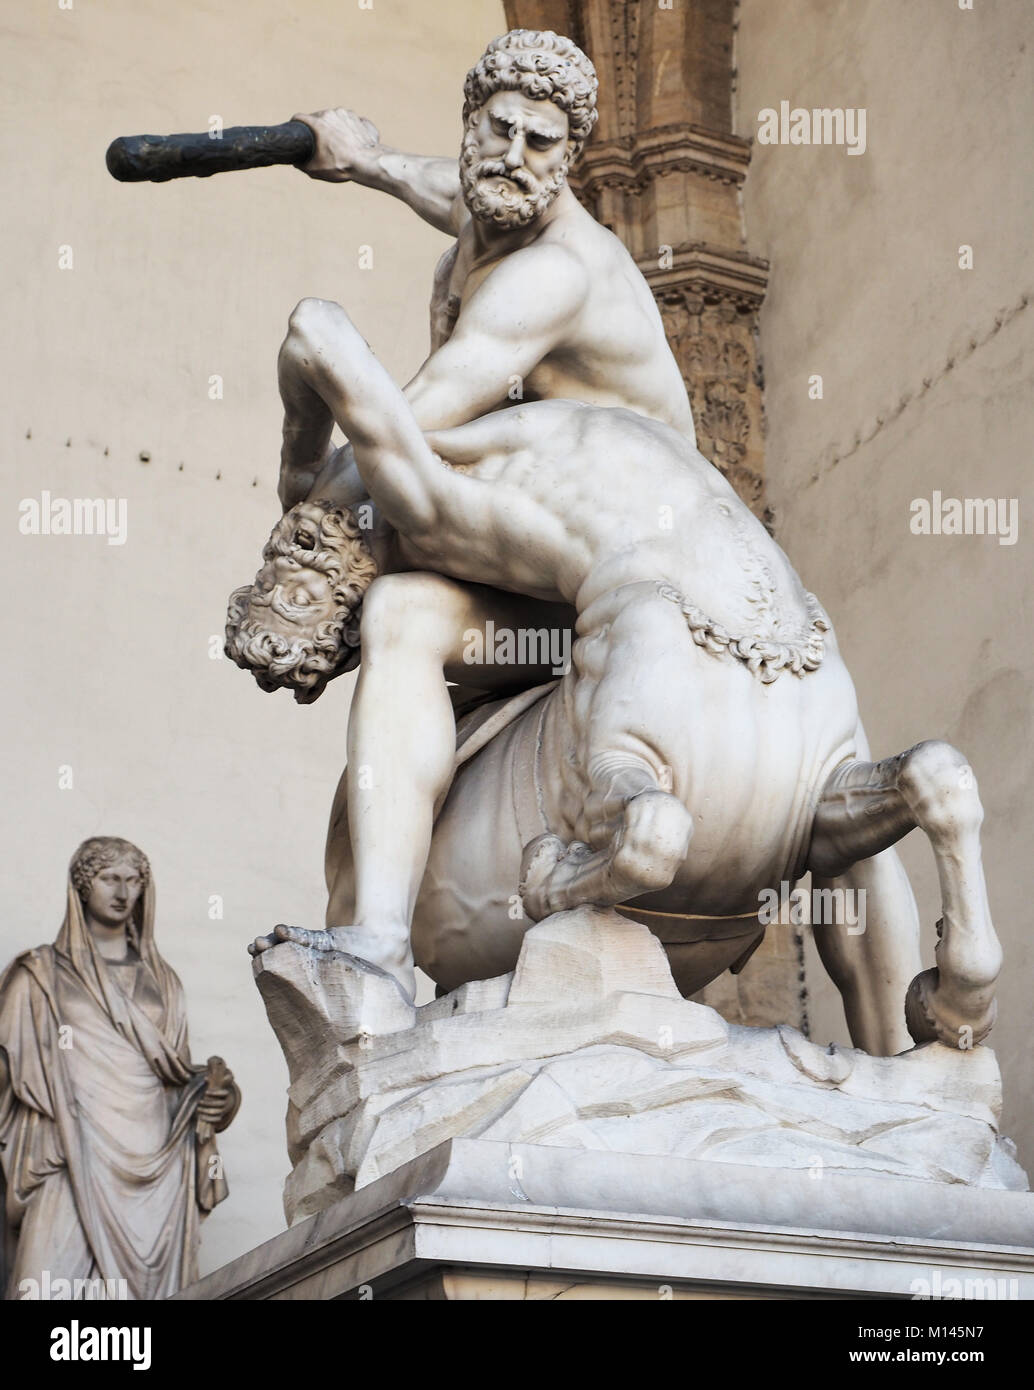 Italy,Florence,Loggia dei Lanzi,Hercules and the Centaurus statue - Stock Image